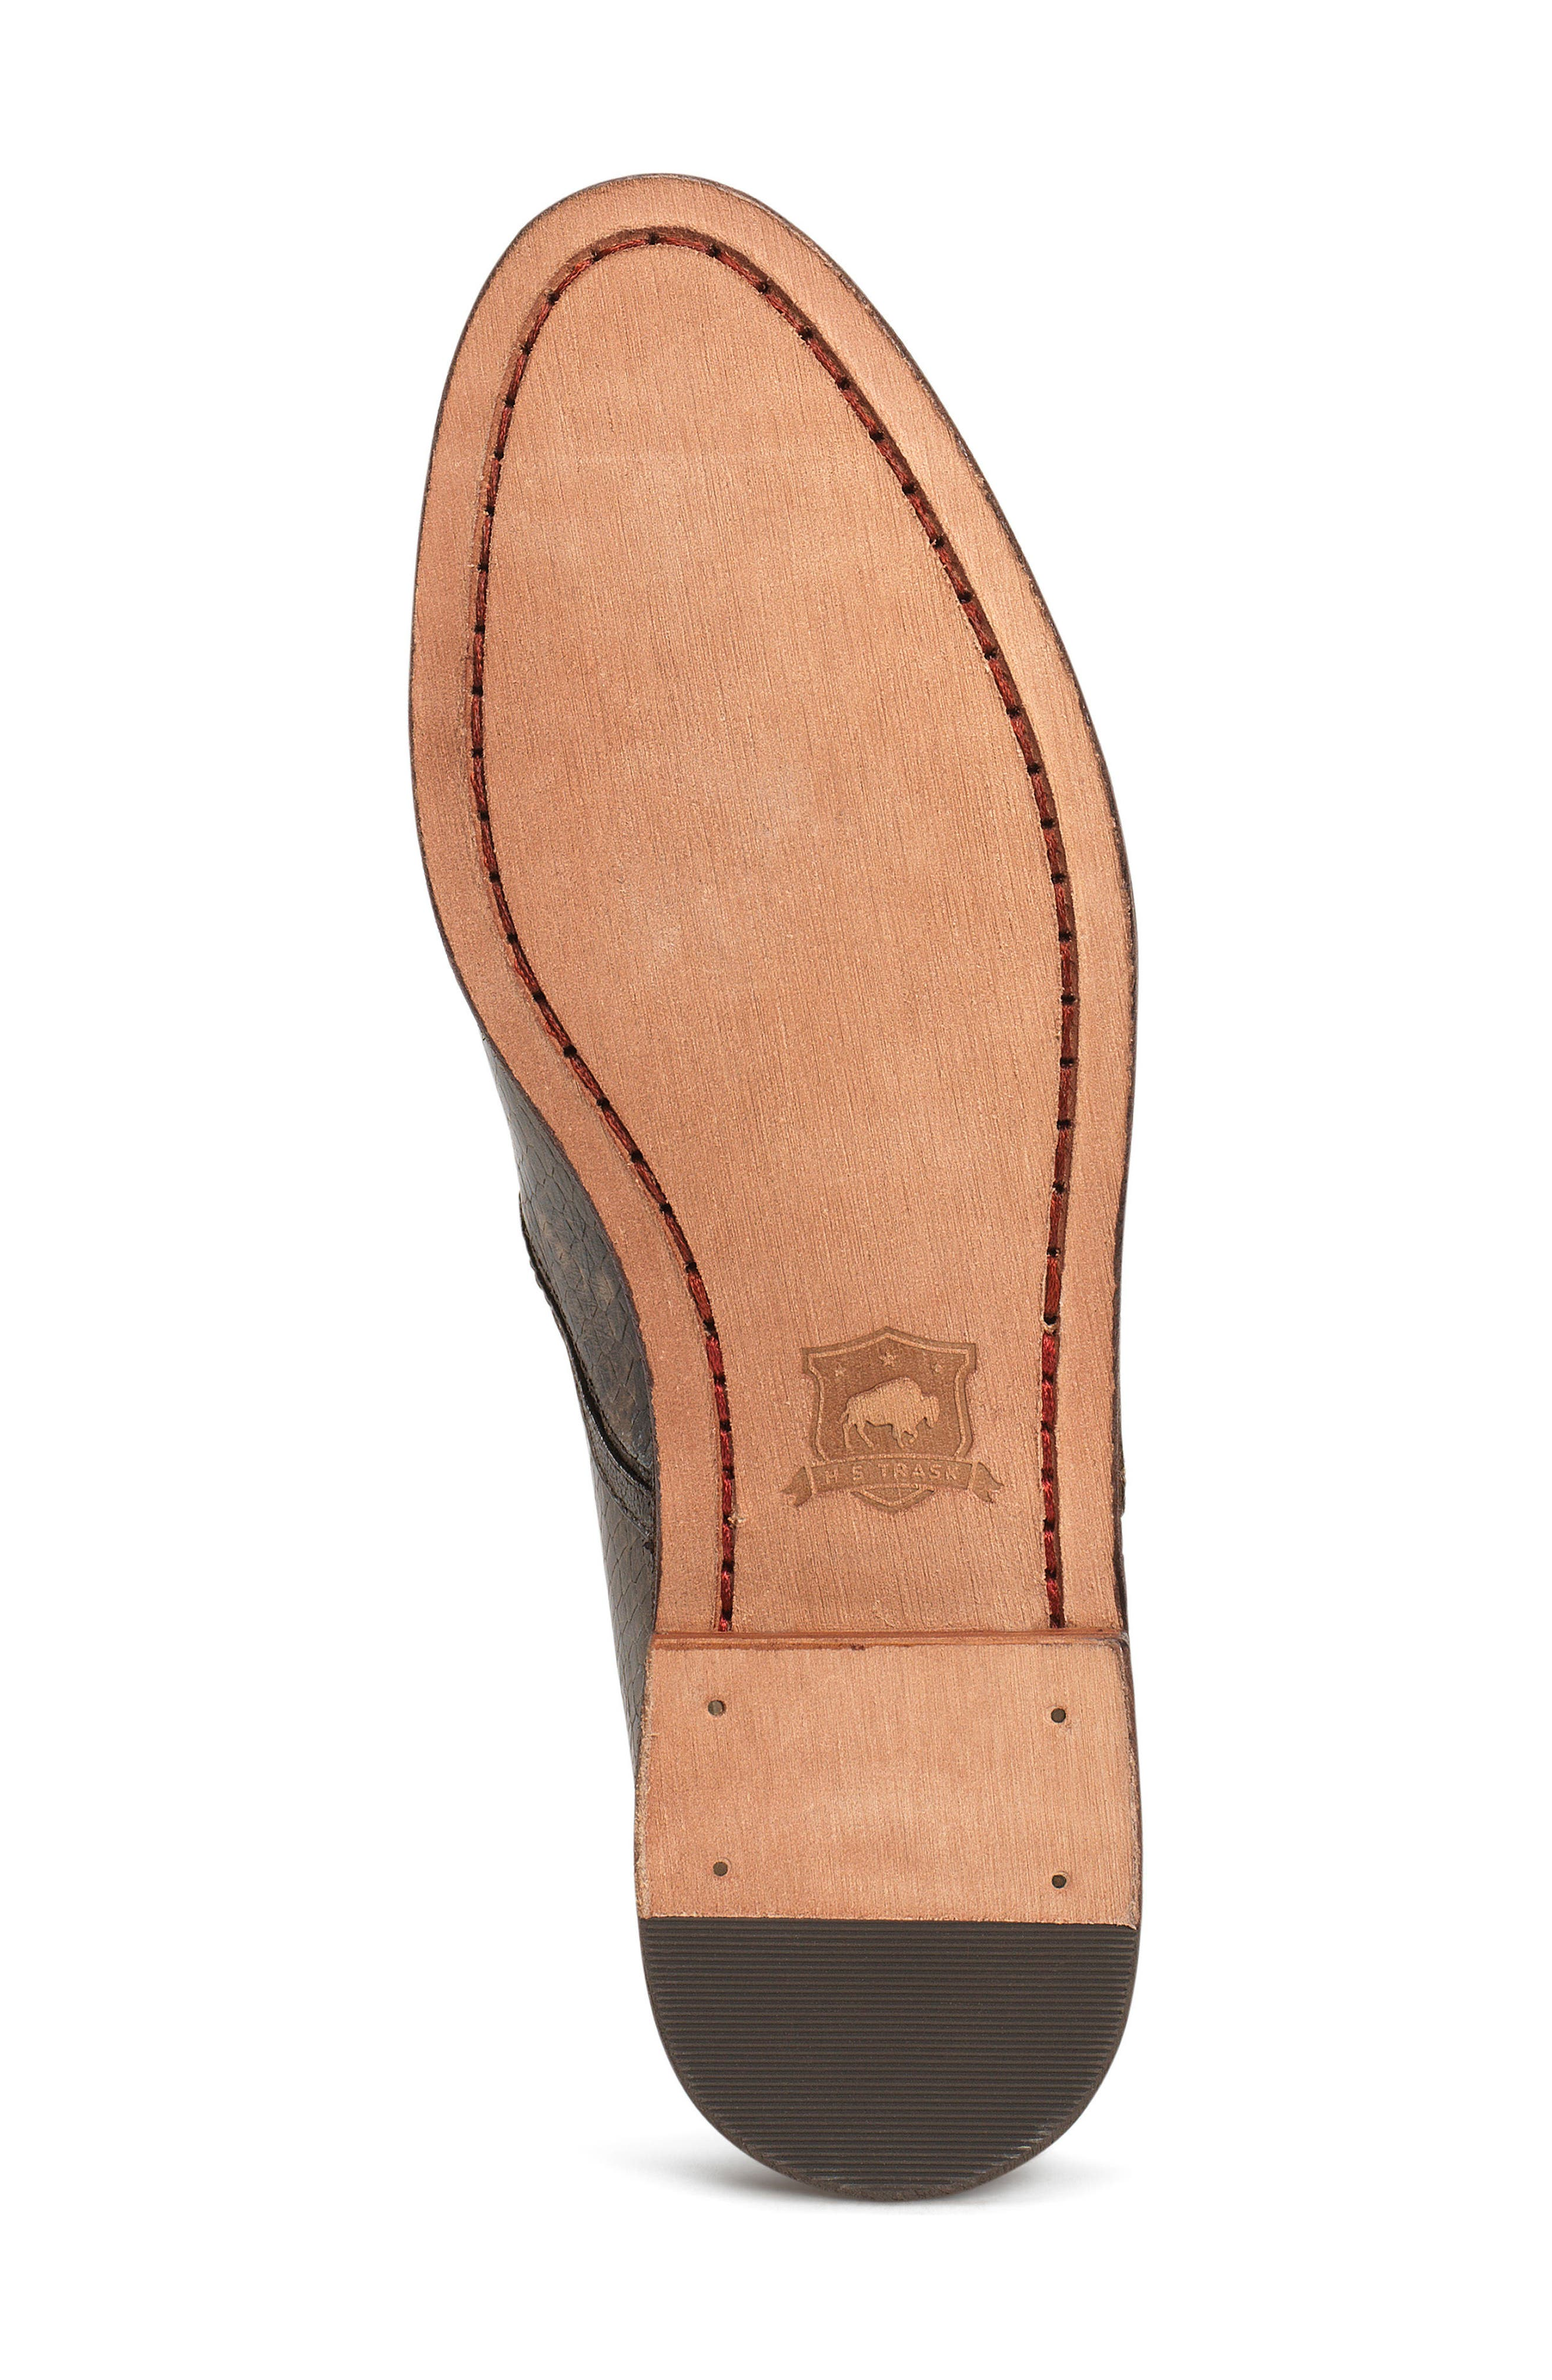 'Ali' Flat,                             Alternate thumbnail 6, color,                             Brown Print Leather